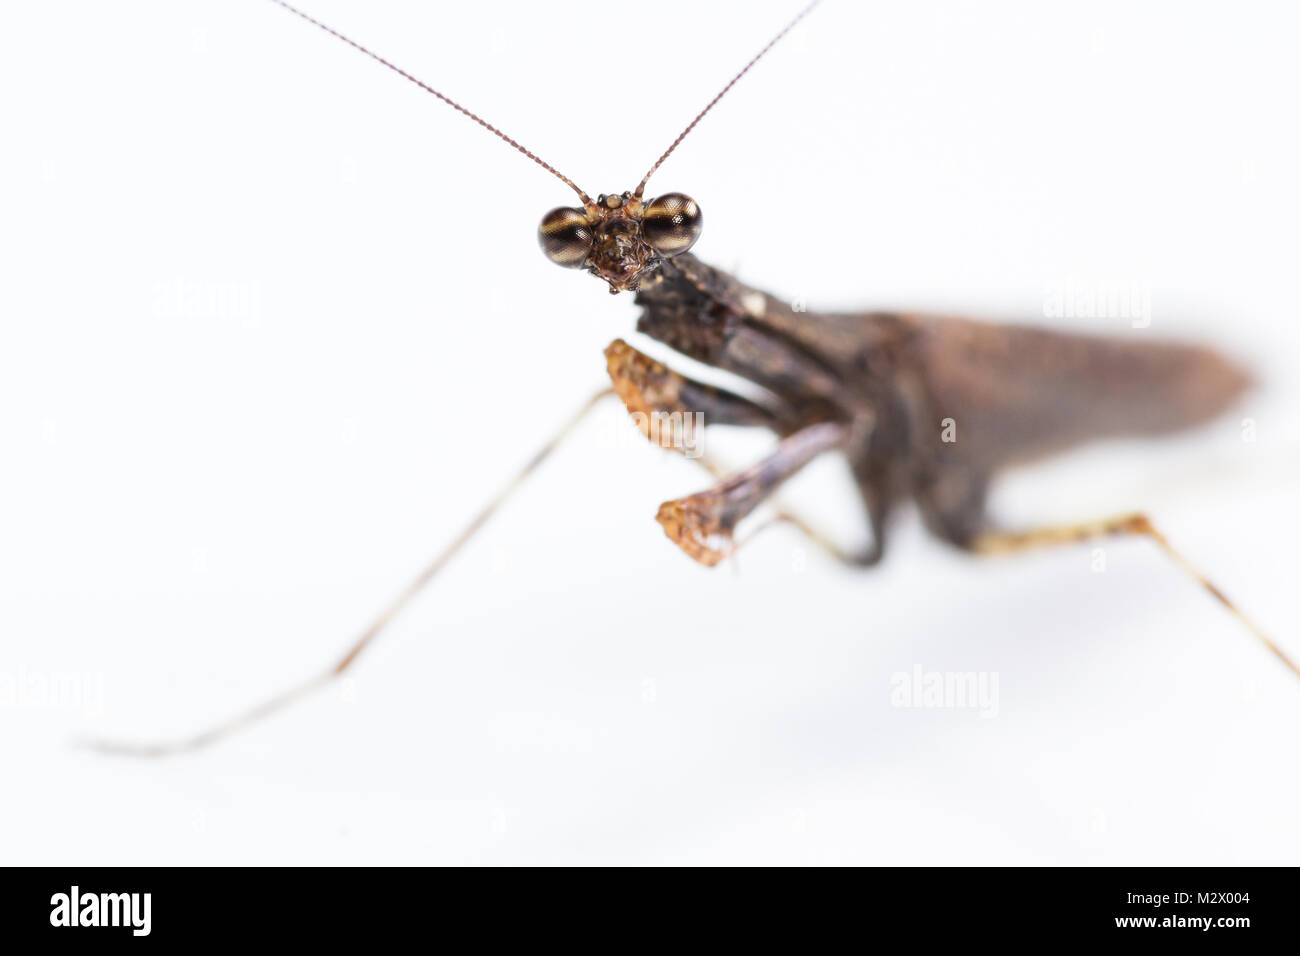 close up of a praying mantis of only 2 inches long and brown color isolated on a white background - Stock Image